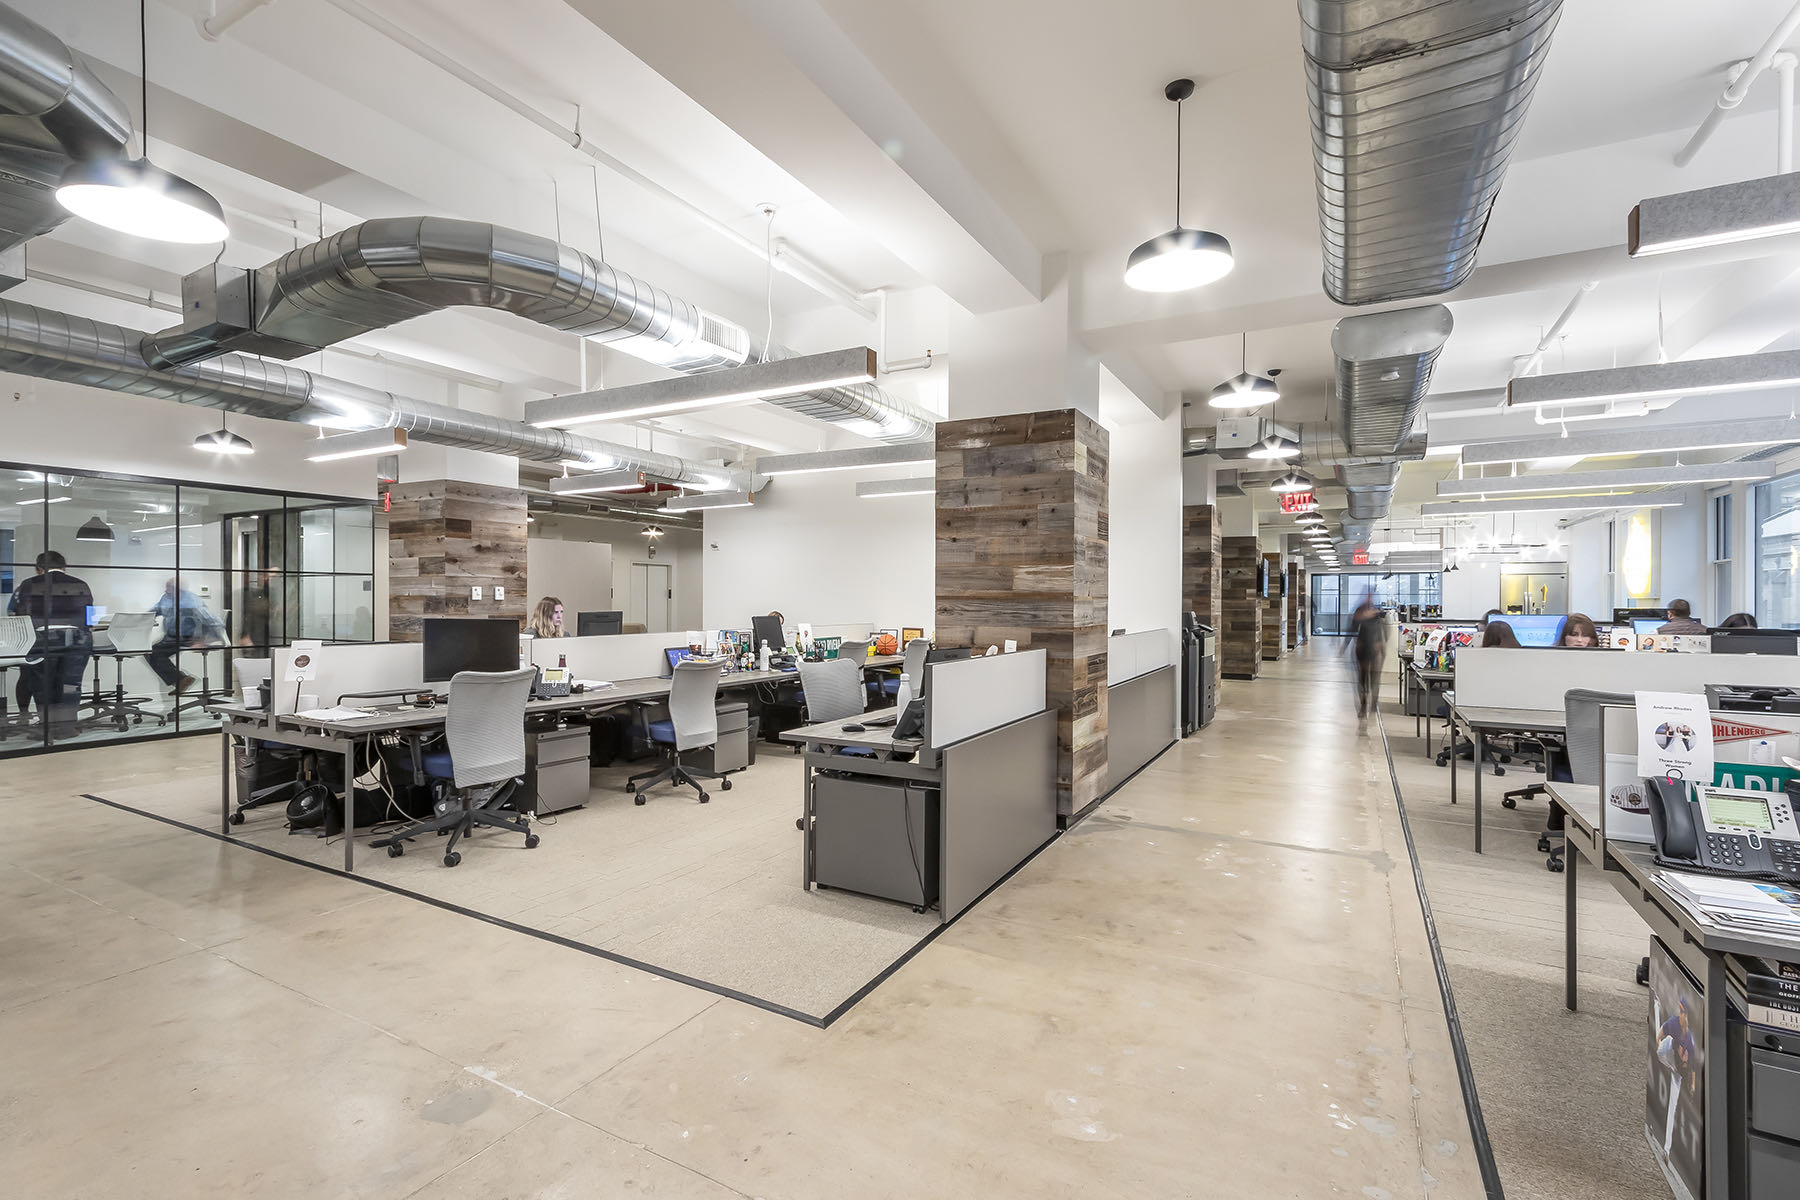 dkc-nyc-office-7